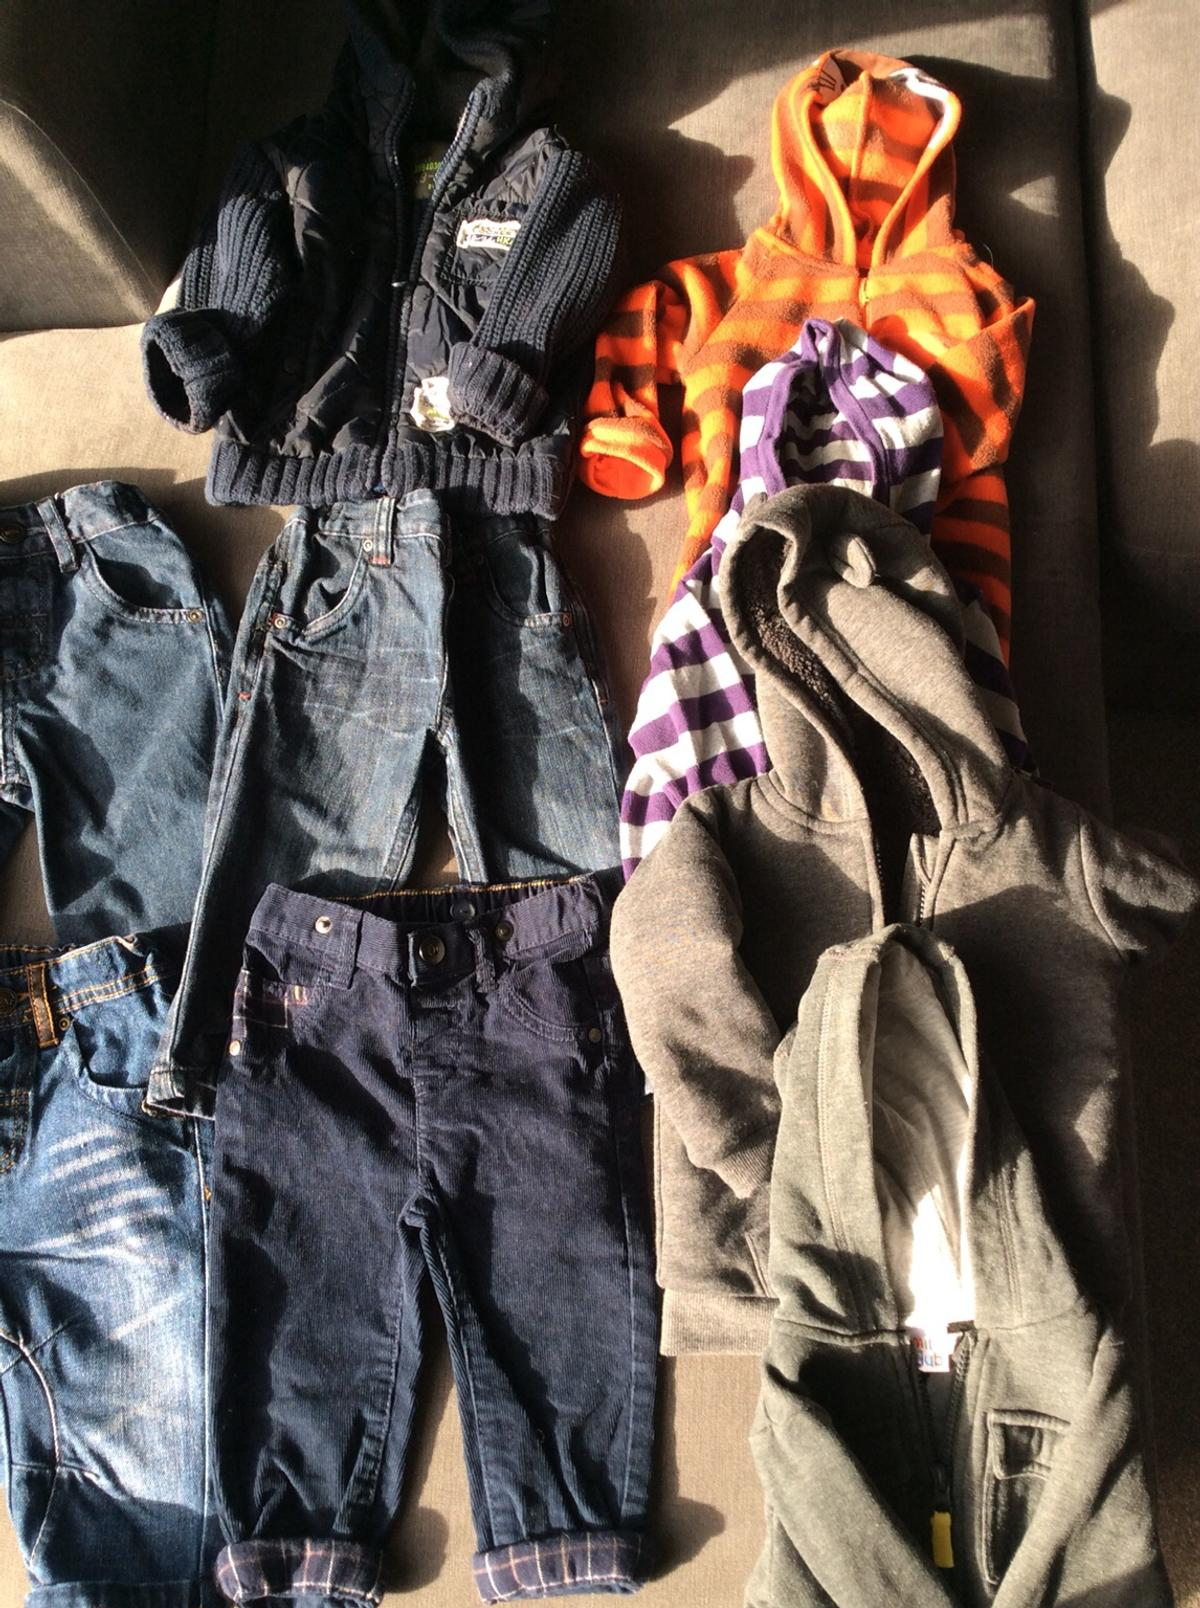 3 hoodies from George, Boots and Early days 5 tops - Next 1 Disney top - George 1 Tiger onesie 3 jeans - Next 1 Trousers- Nutmeg 1 Jacket - Next